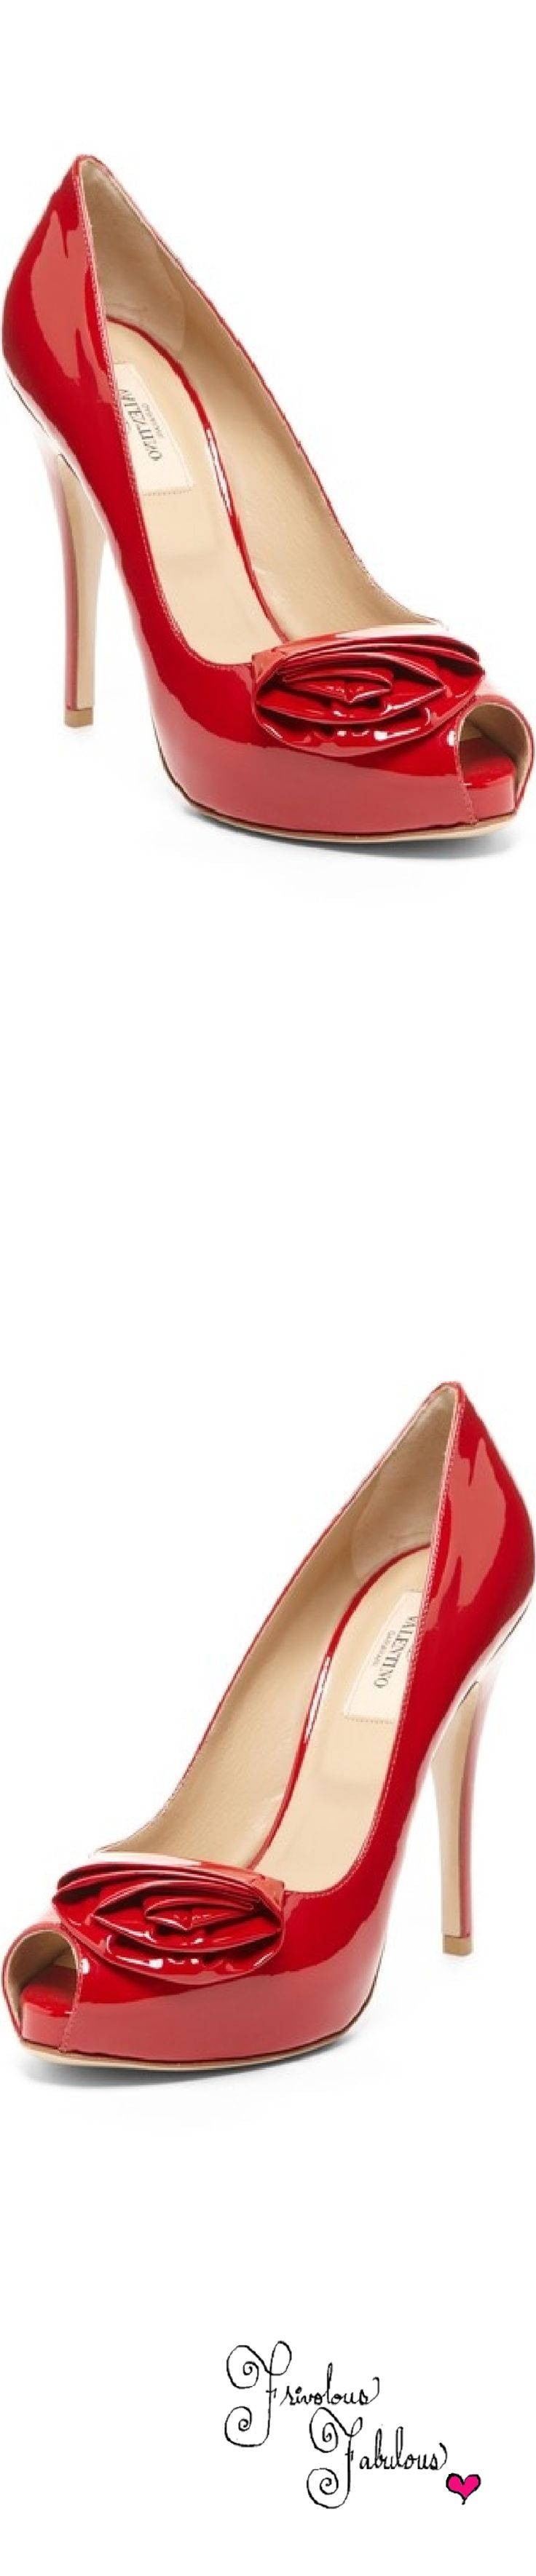 Valentino Red Patent Leather Peep Toe Pumps   House of Beccaria~